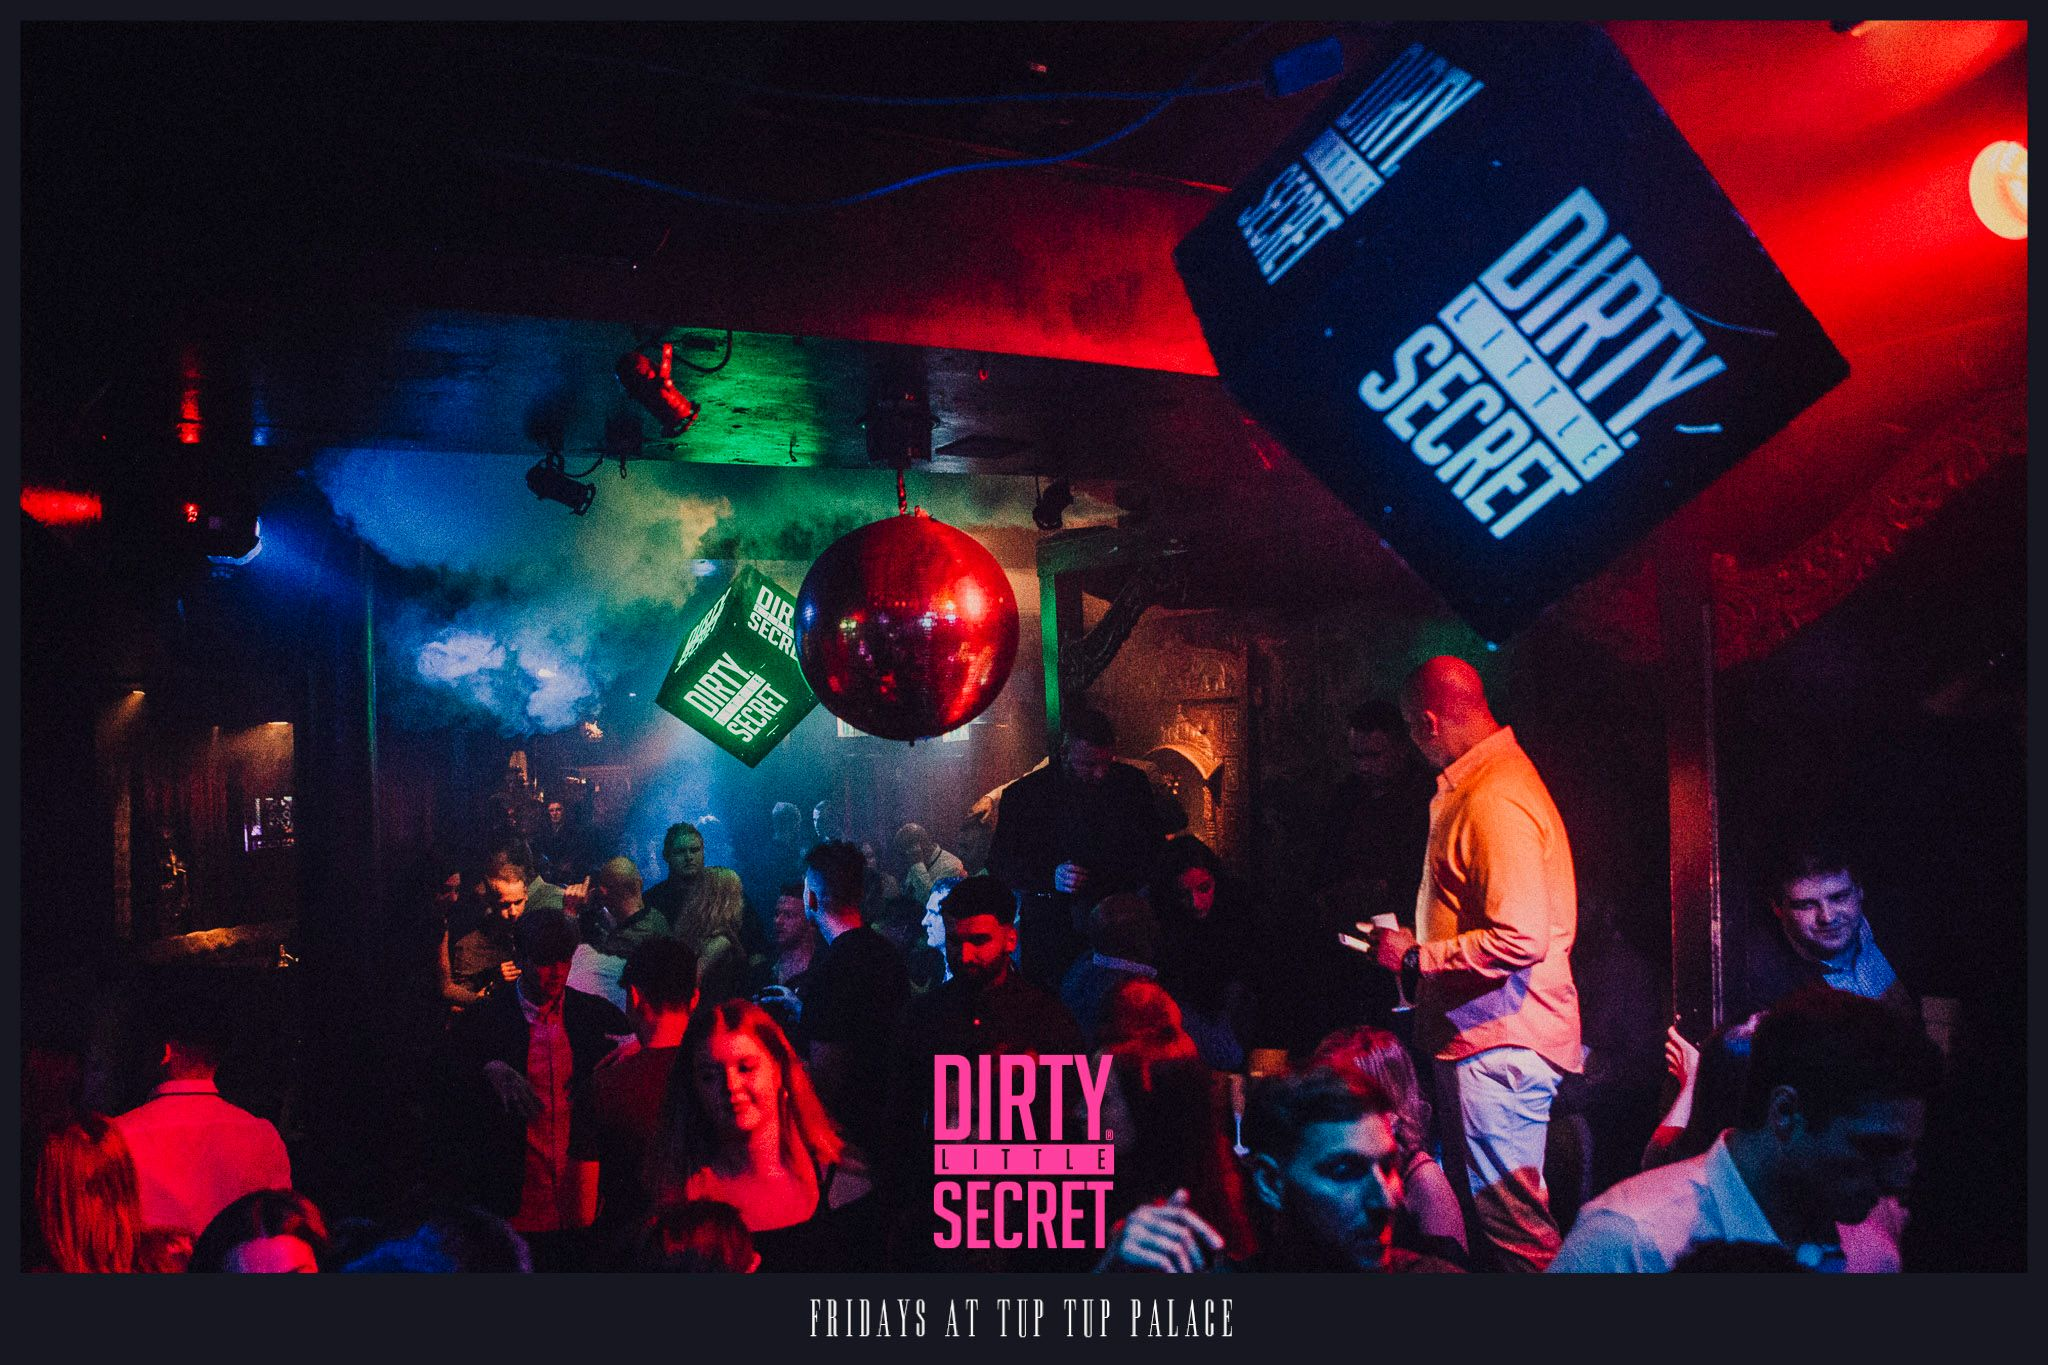 Club Night Guide to Newcastle Nightclubs, with an image of the interior of Tup Tup Palace during Dirty Little Secret